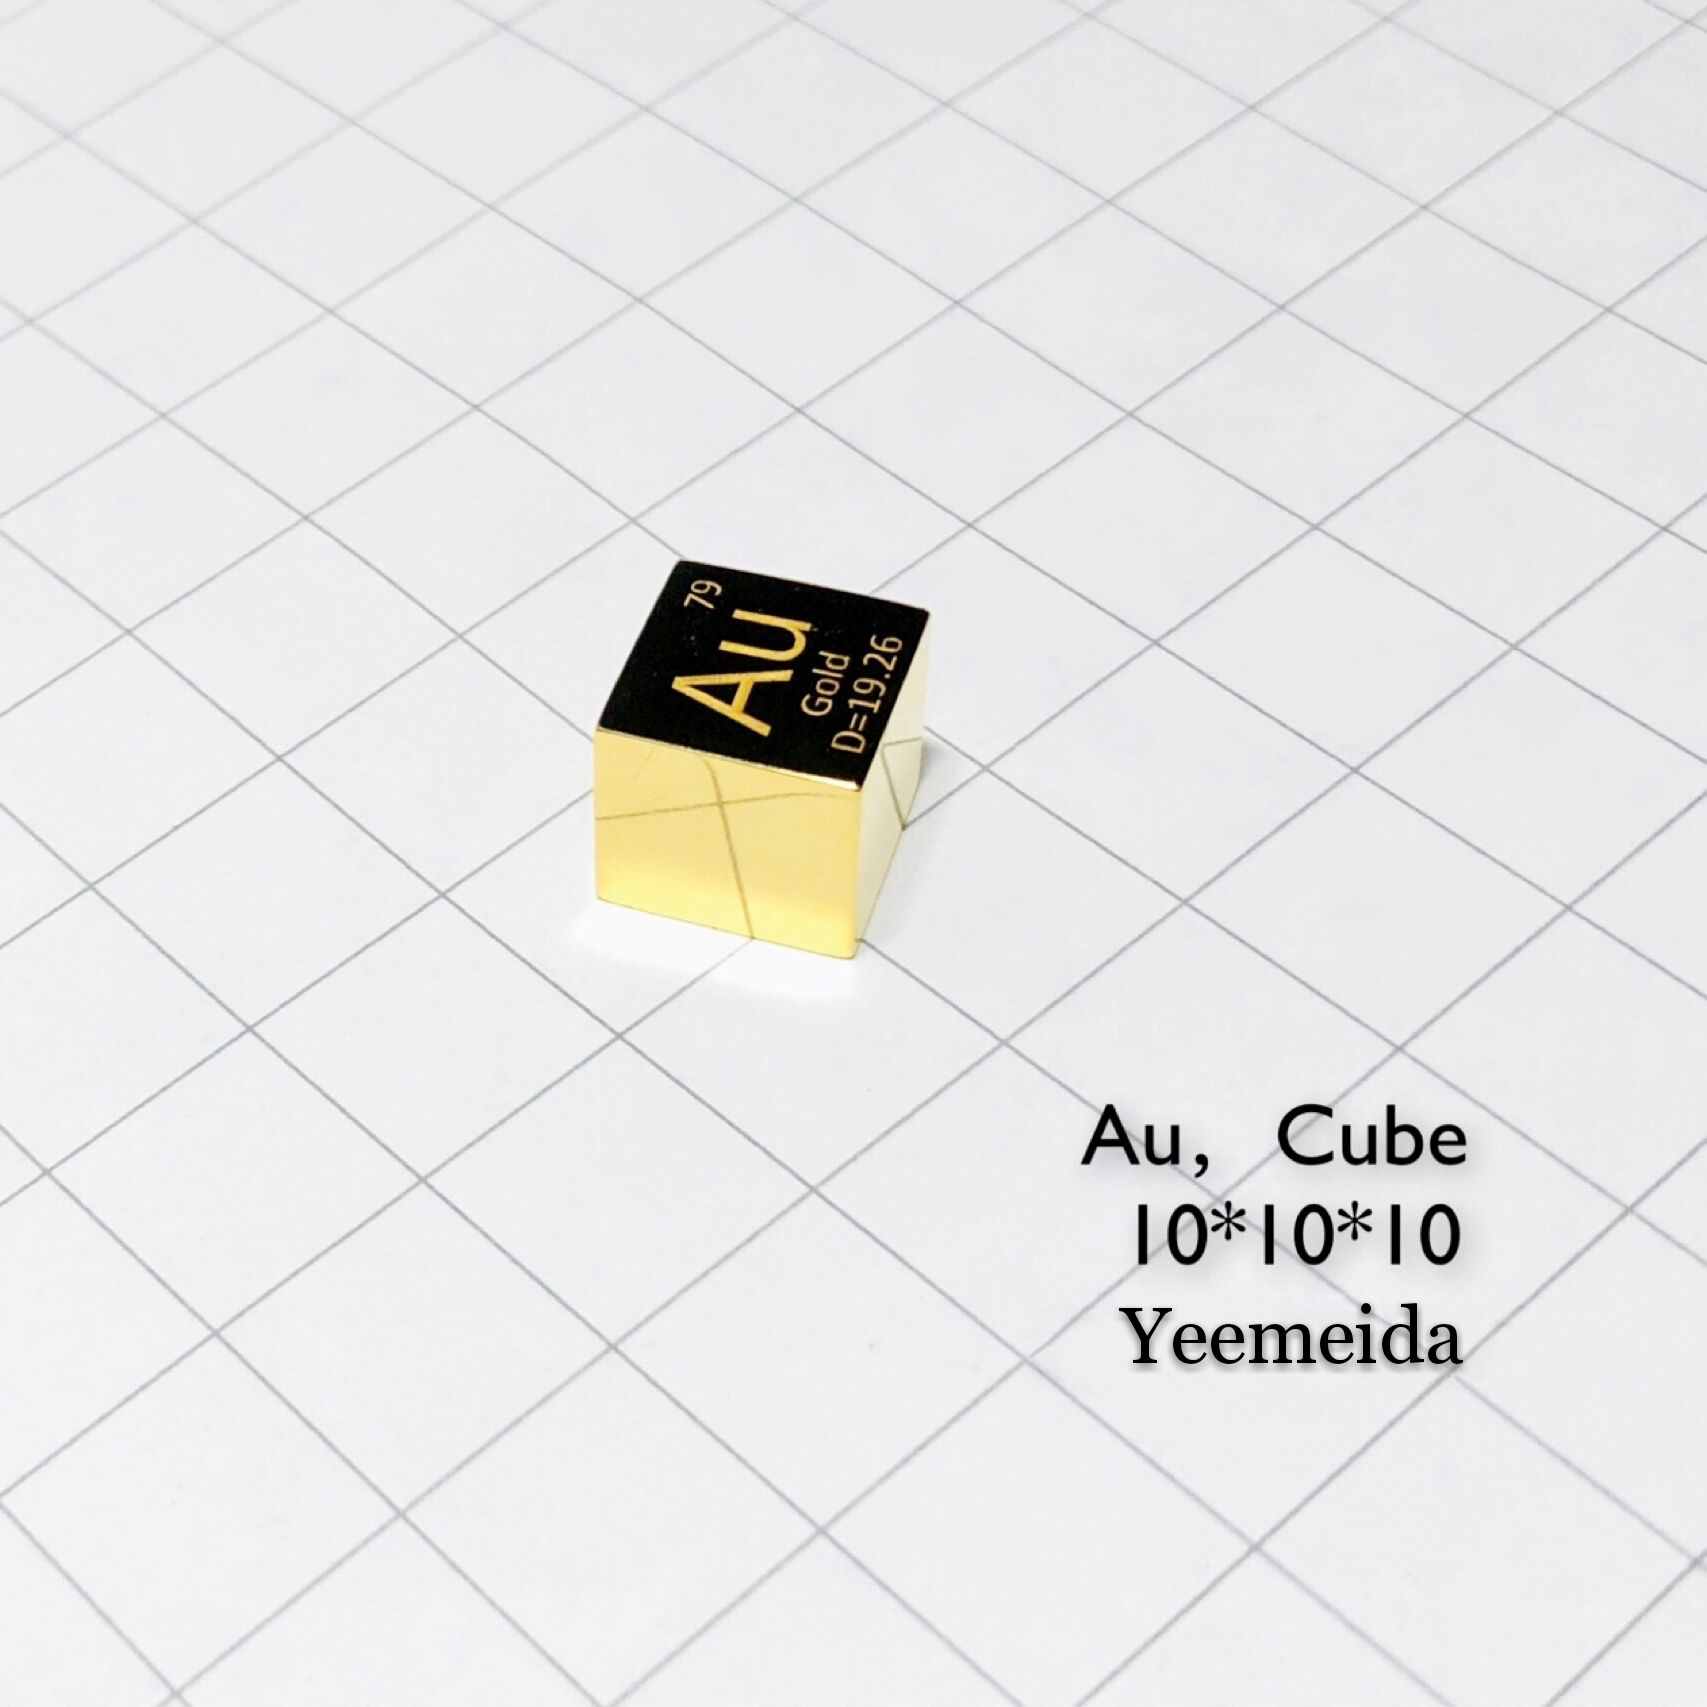 Free shipping Gold metal cube 9999 pure mirror polished 10mm density ingot Au periodic element table / pellet for research